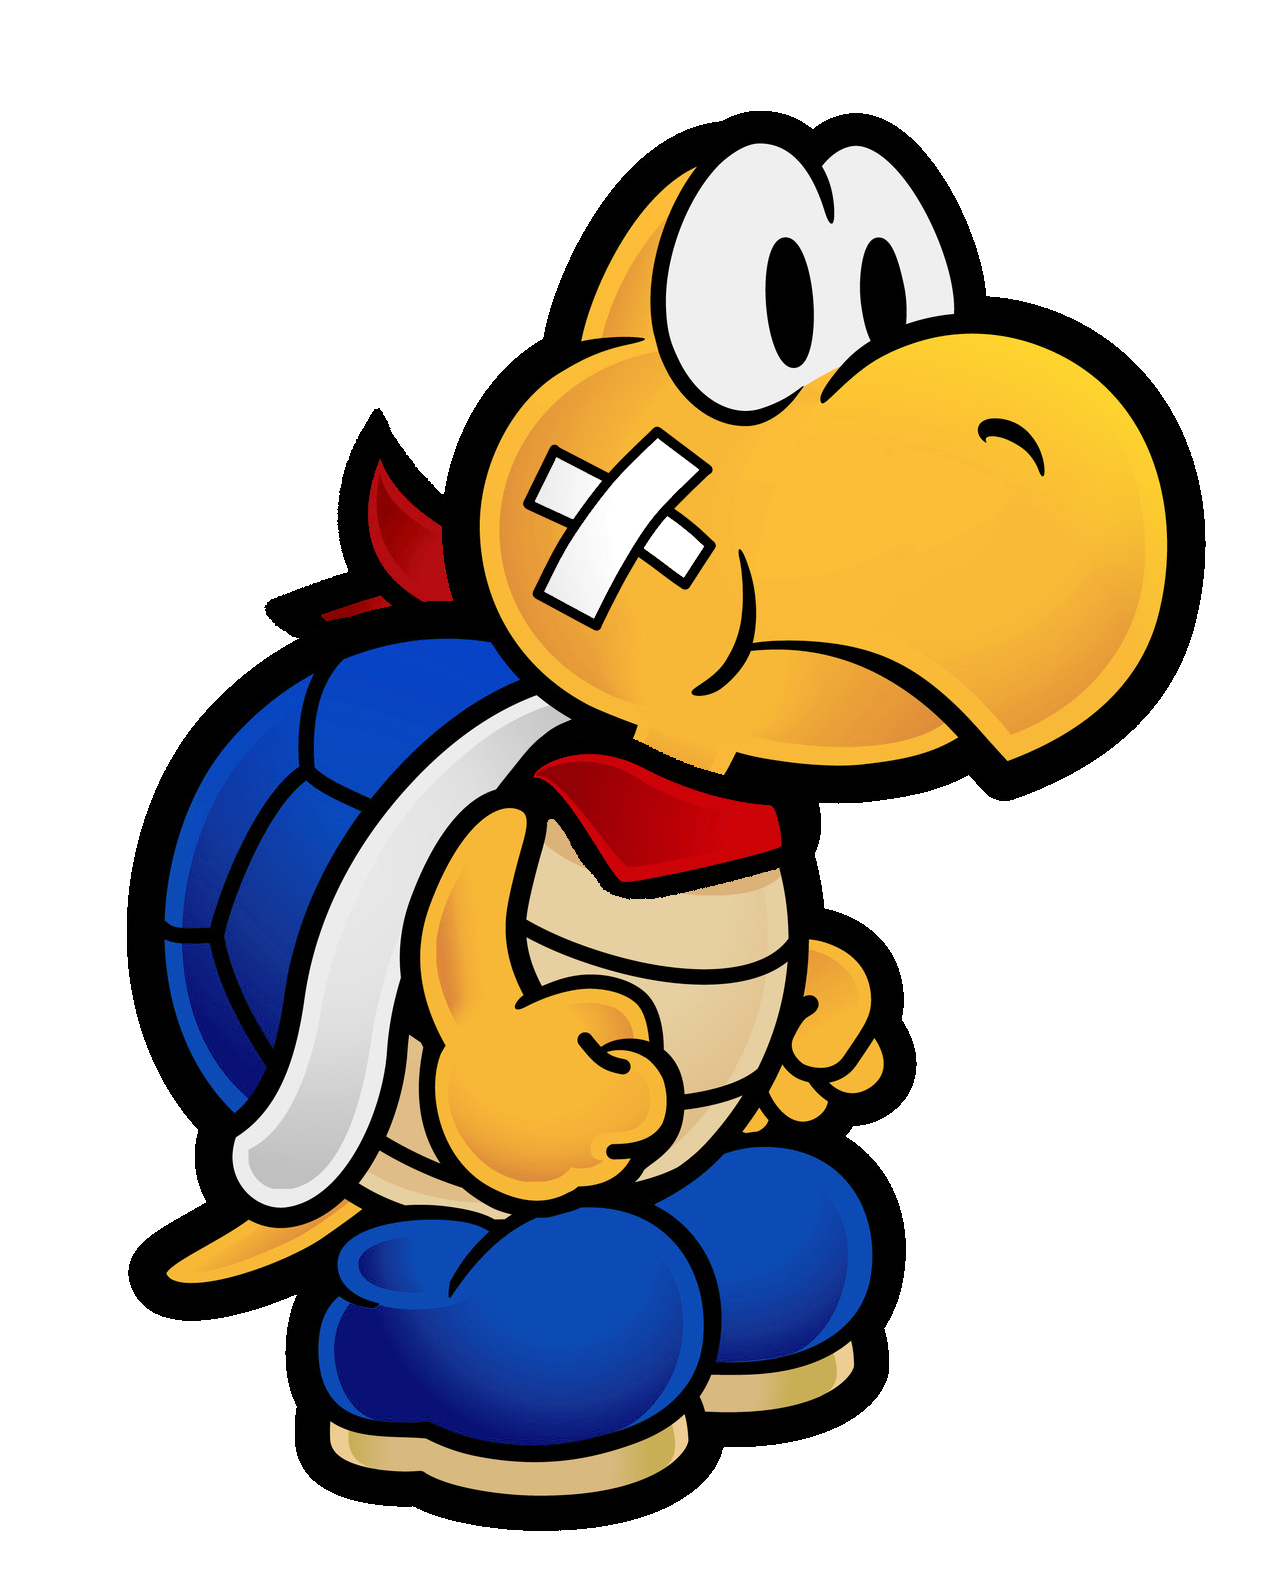 Favourite Super Mario Character? [POLL]